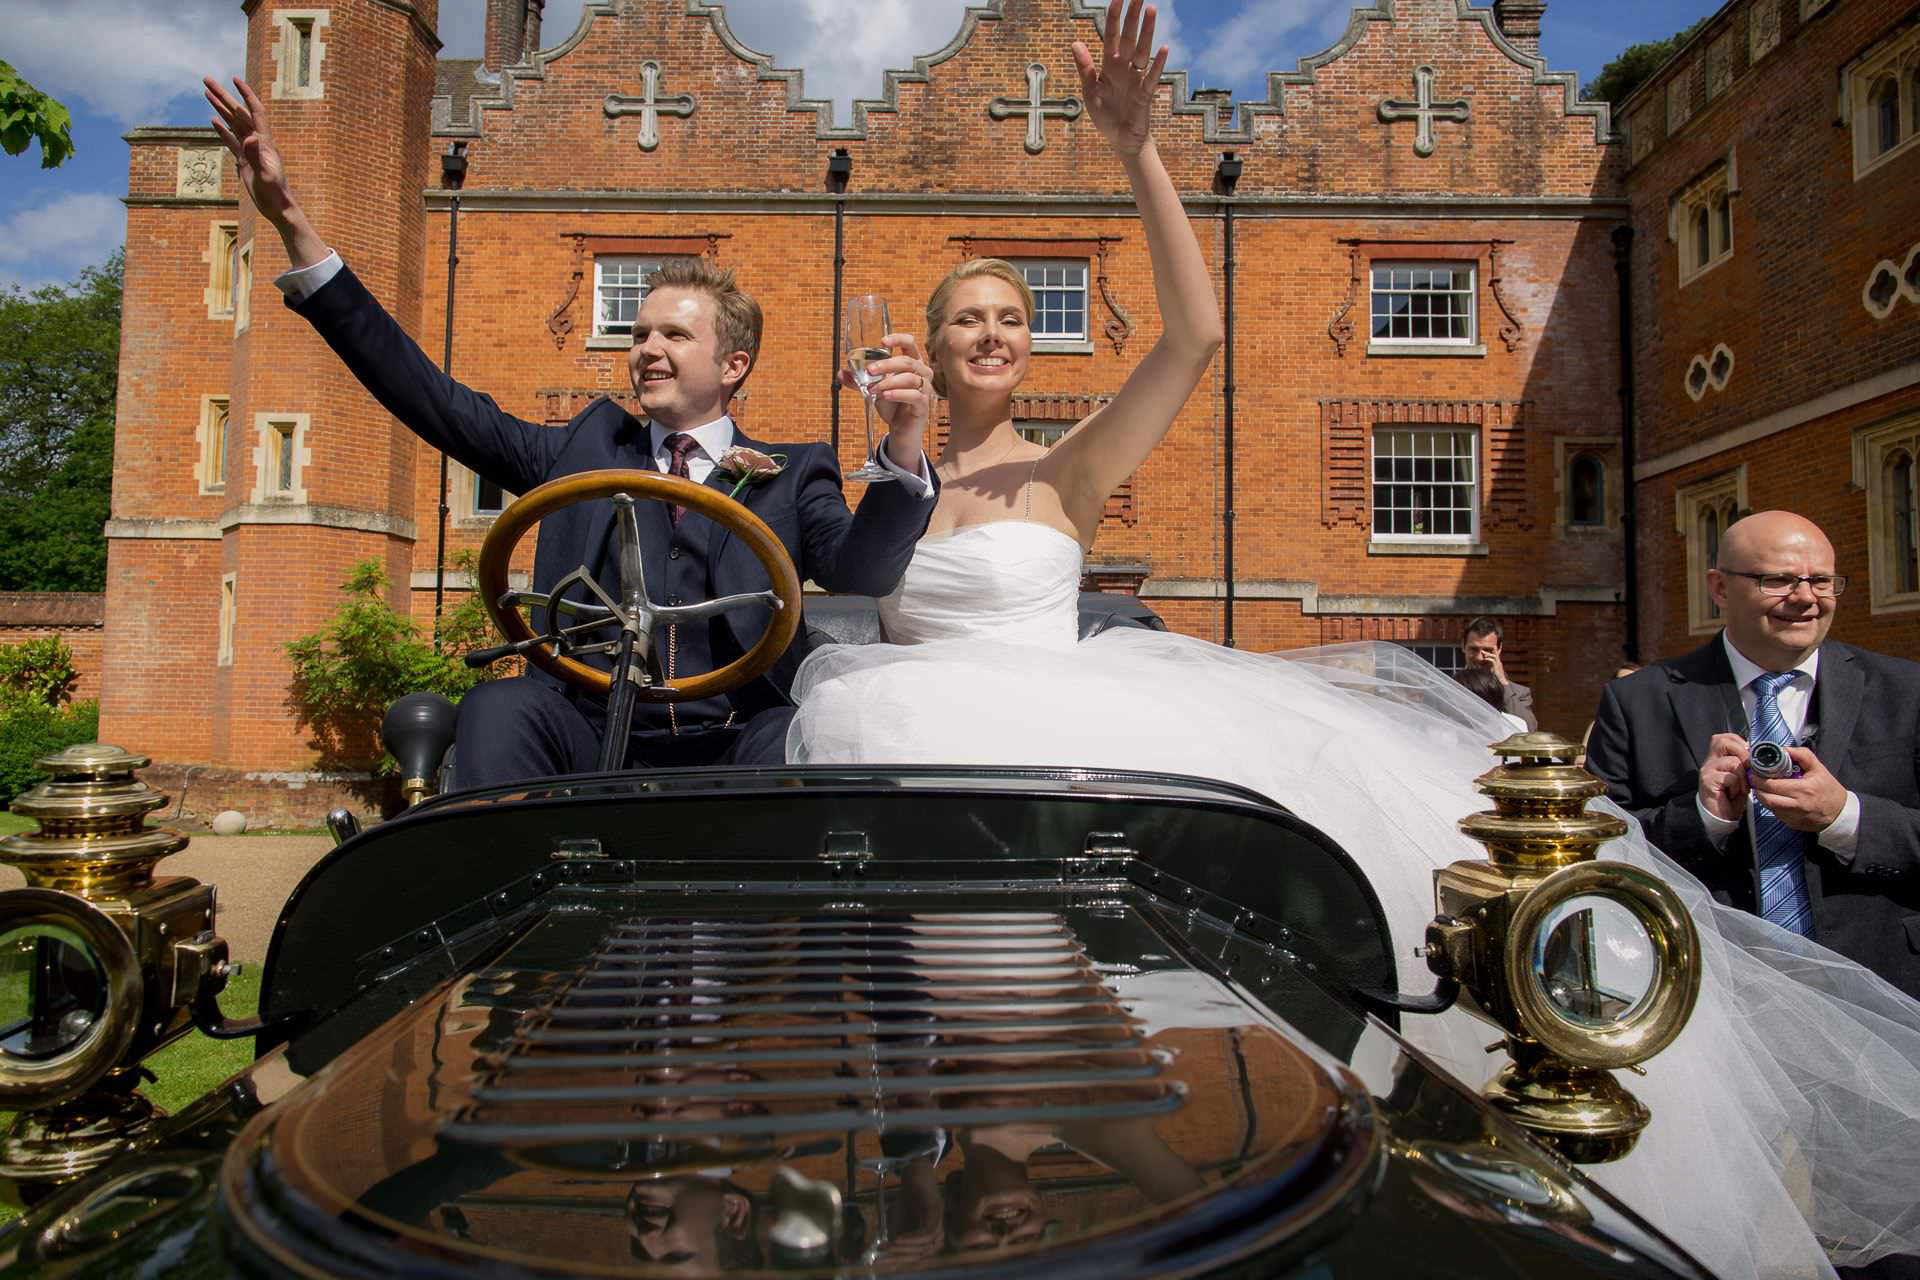 Wotton House wedding bride and groom raising hand seating in the car